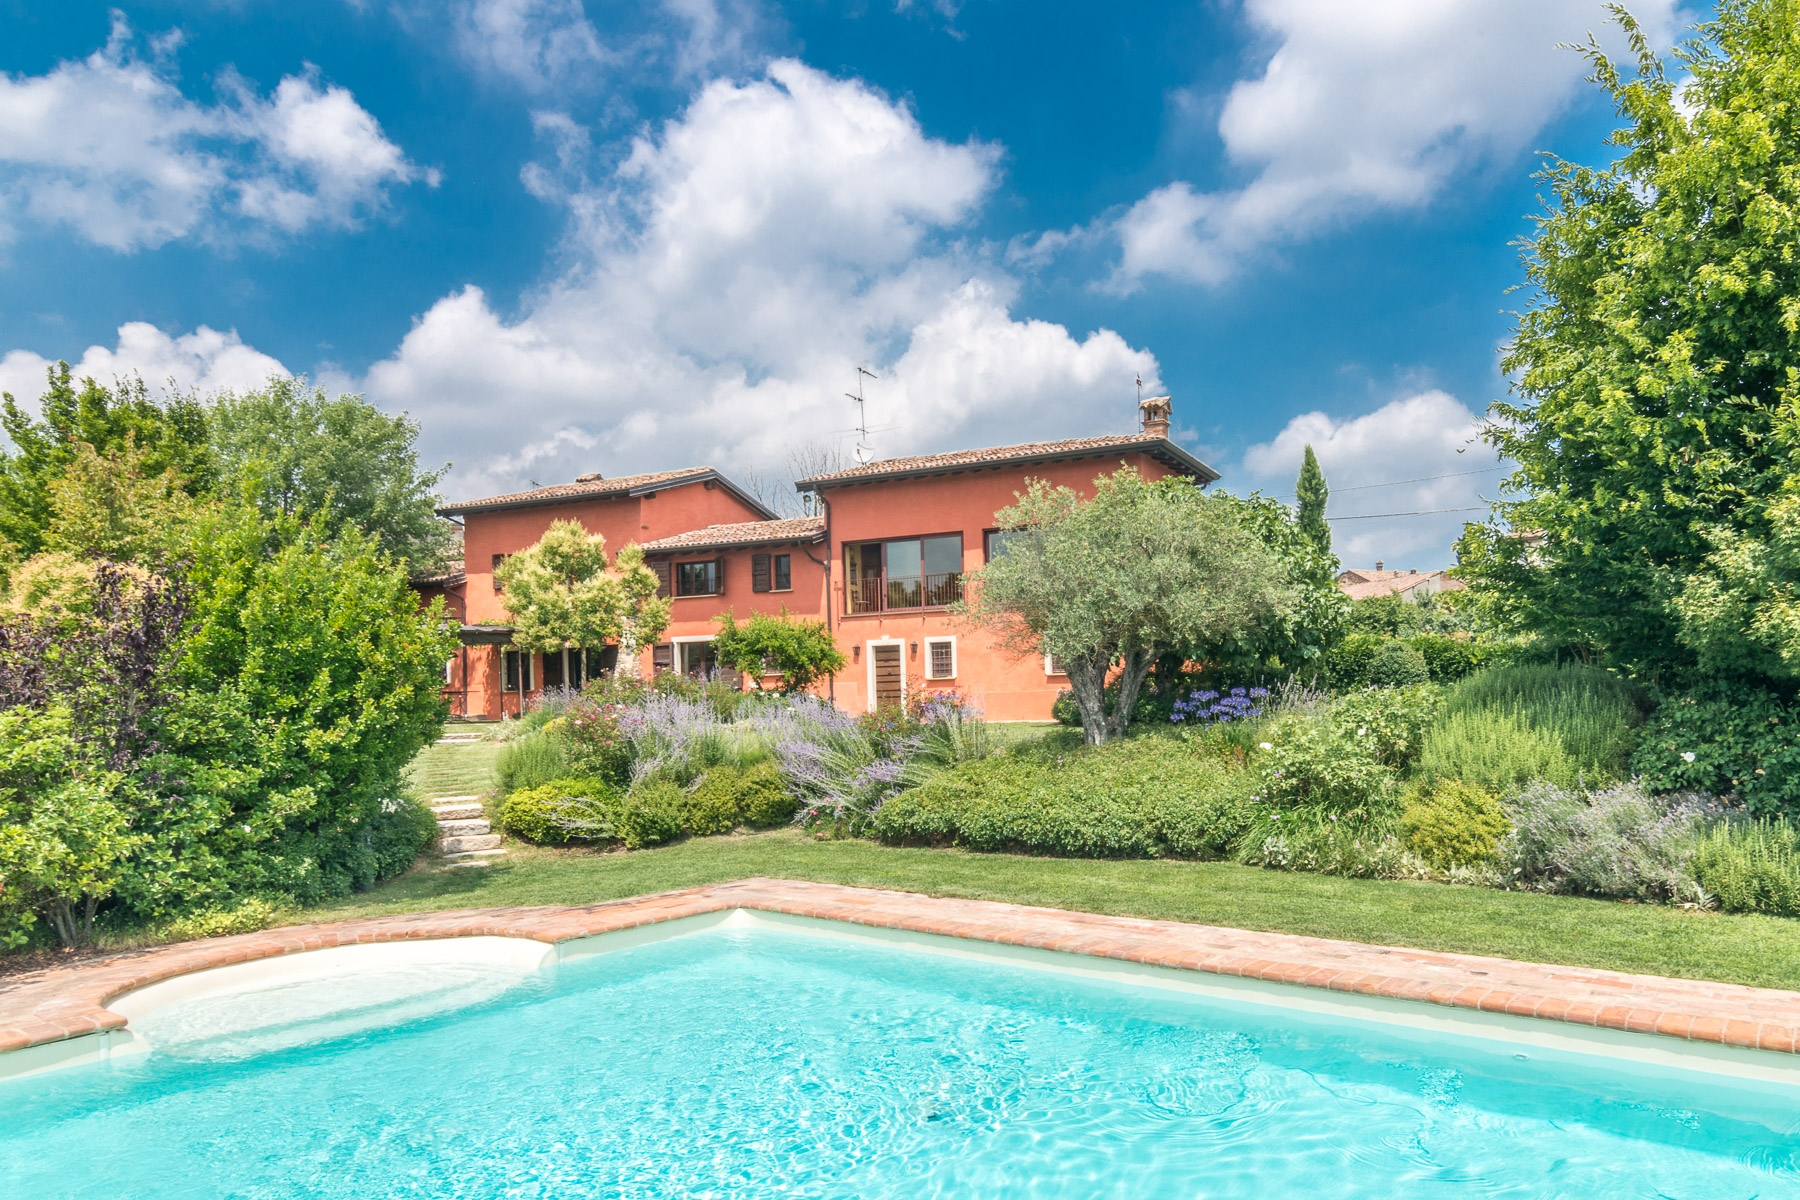 Single Family Homes for Sale at Magnificent farmhouse on the hills of Piacenza Ziano Piacentino, Piacenza Italy